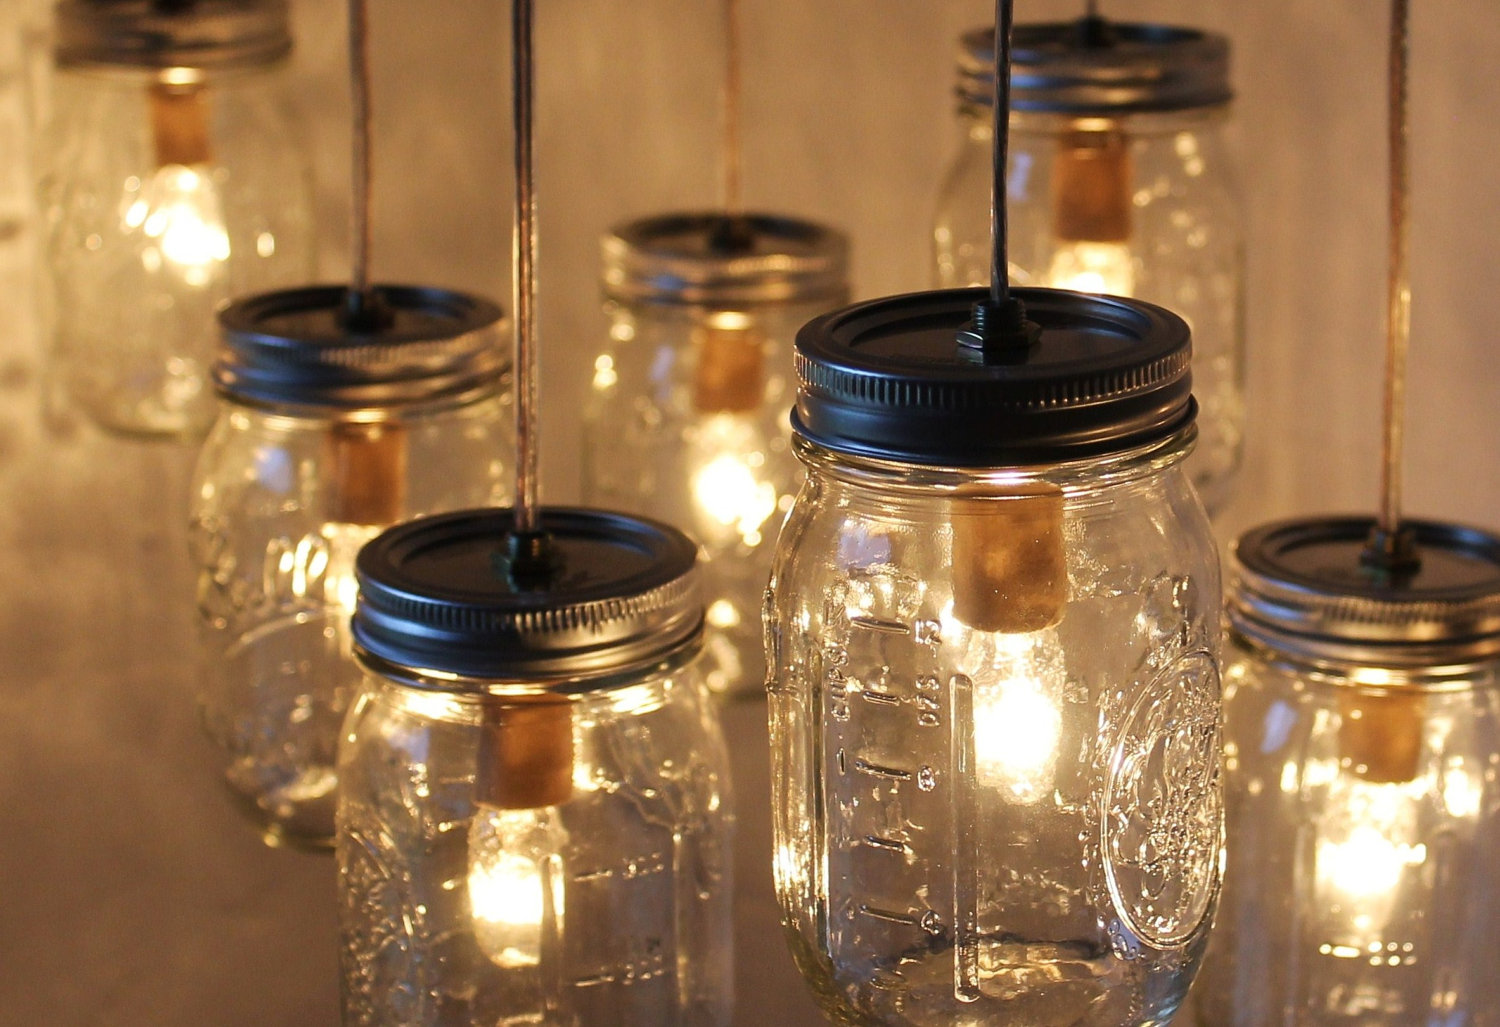 Diy-Mason-jar-Light-Fixture-Image